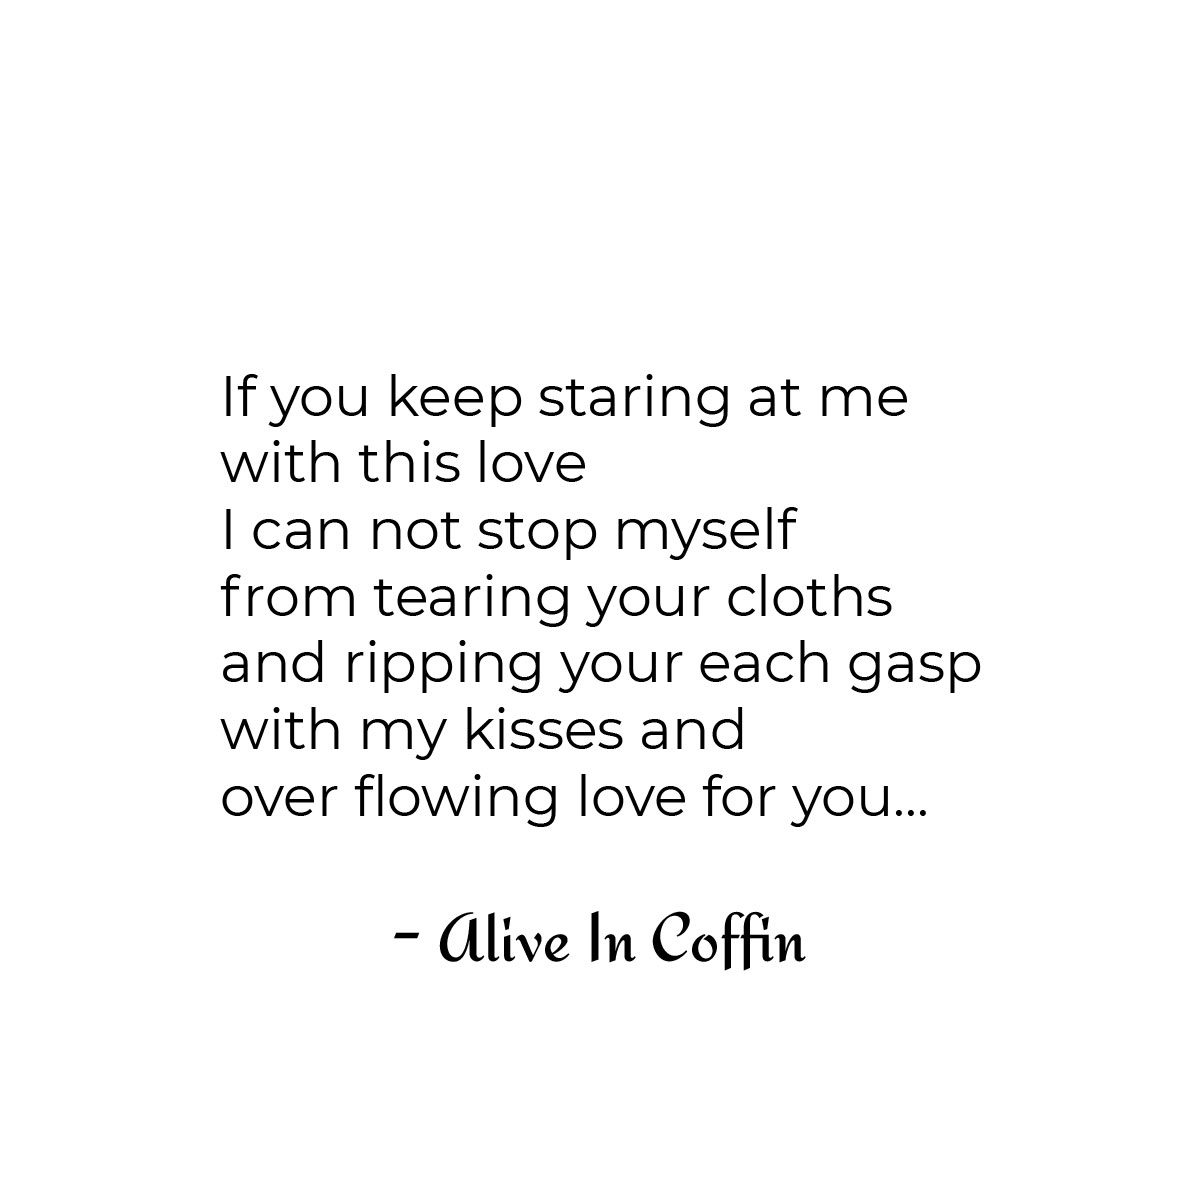 A short erotic poem about overflowing love.